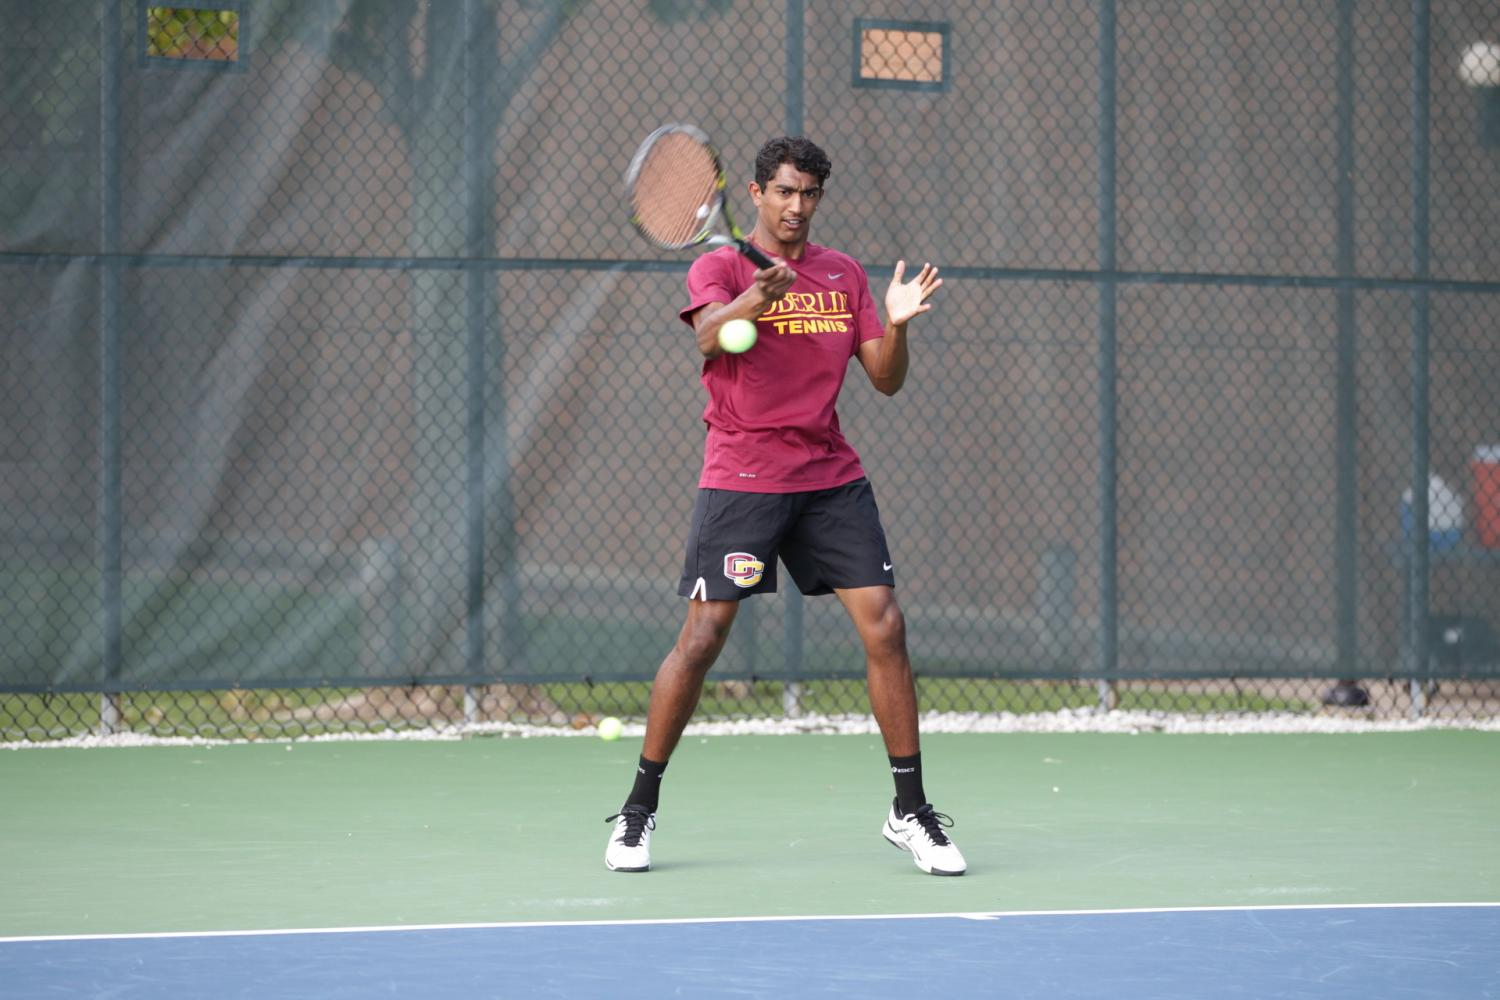 Junior Manickam Manickam completes a forehand follow-through. The Yeomen completed their season with a 5–2 victory over Denison University in the third-place match of the NCAC Tournament.